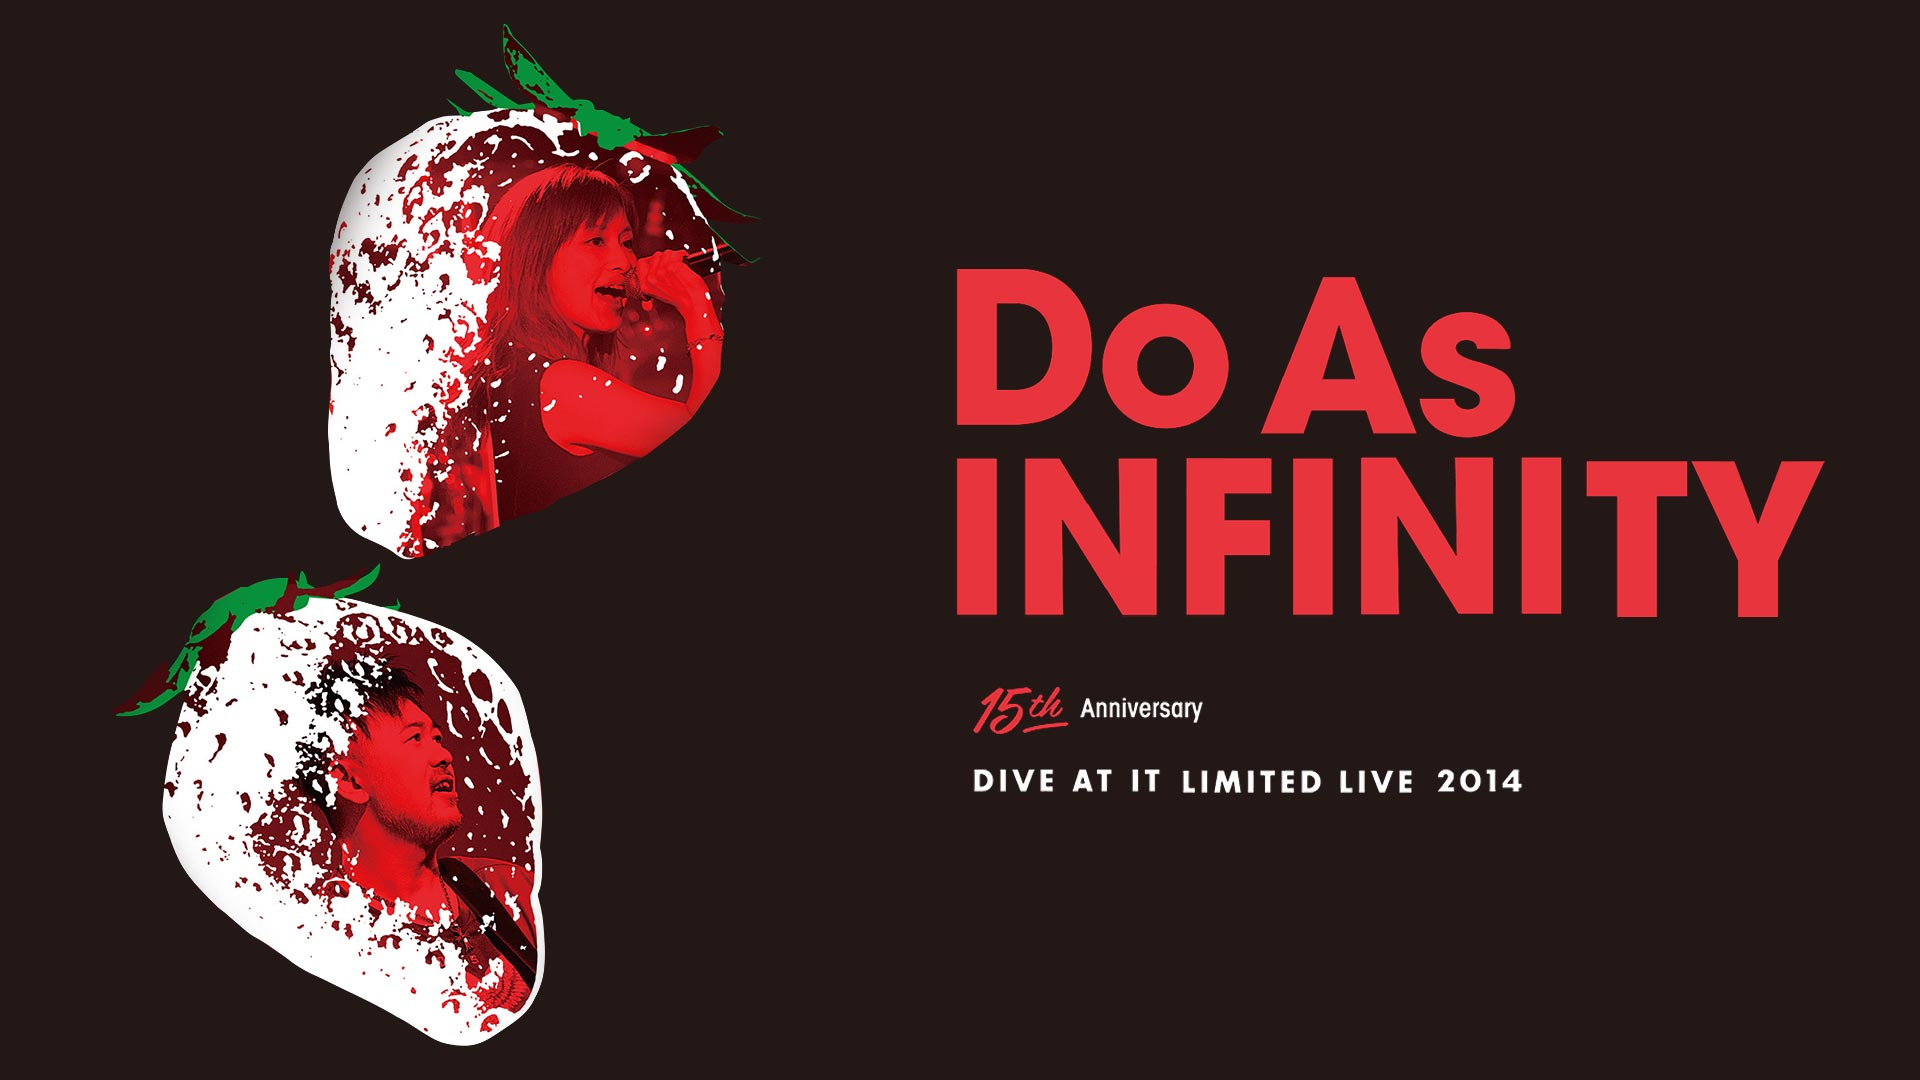 Do As Infinity 15th Anniversary ~Dive At It Limited Live 2014~